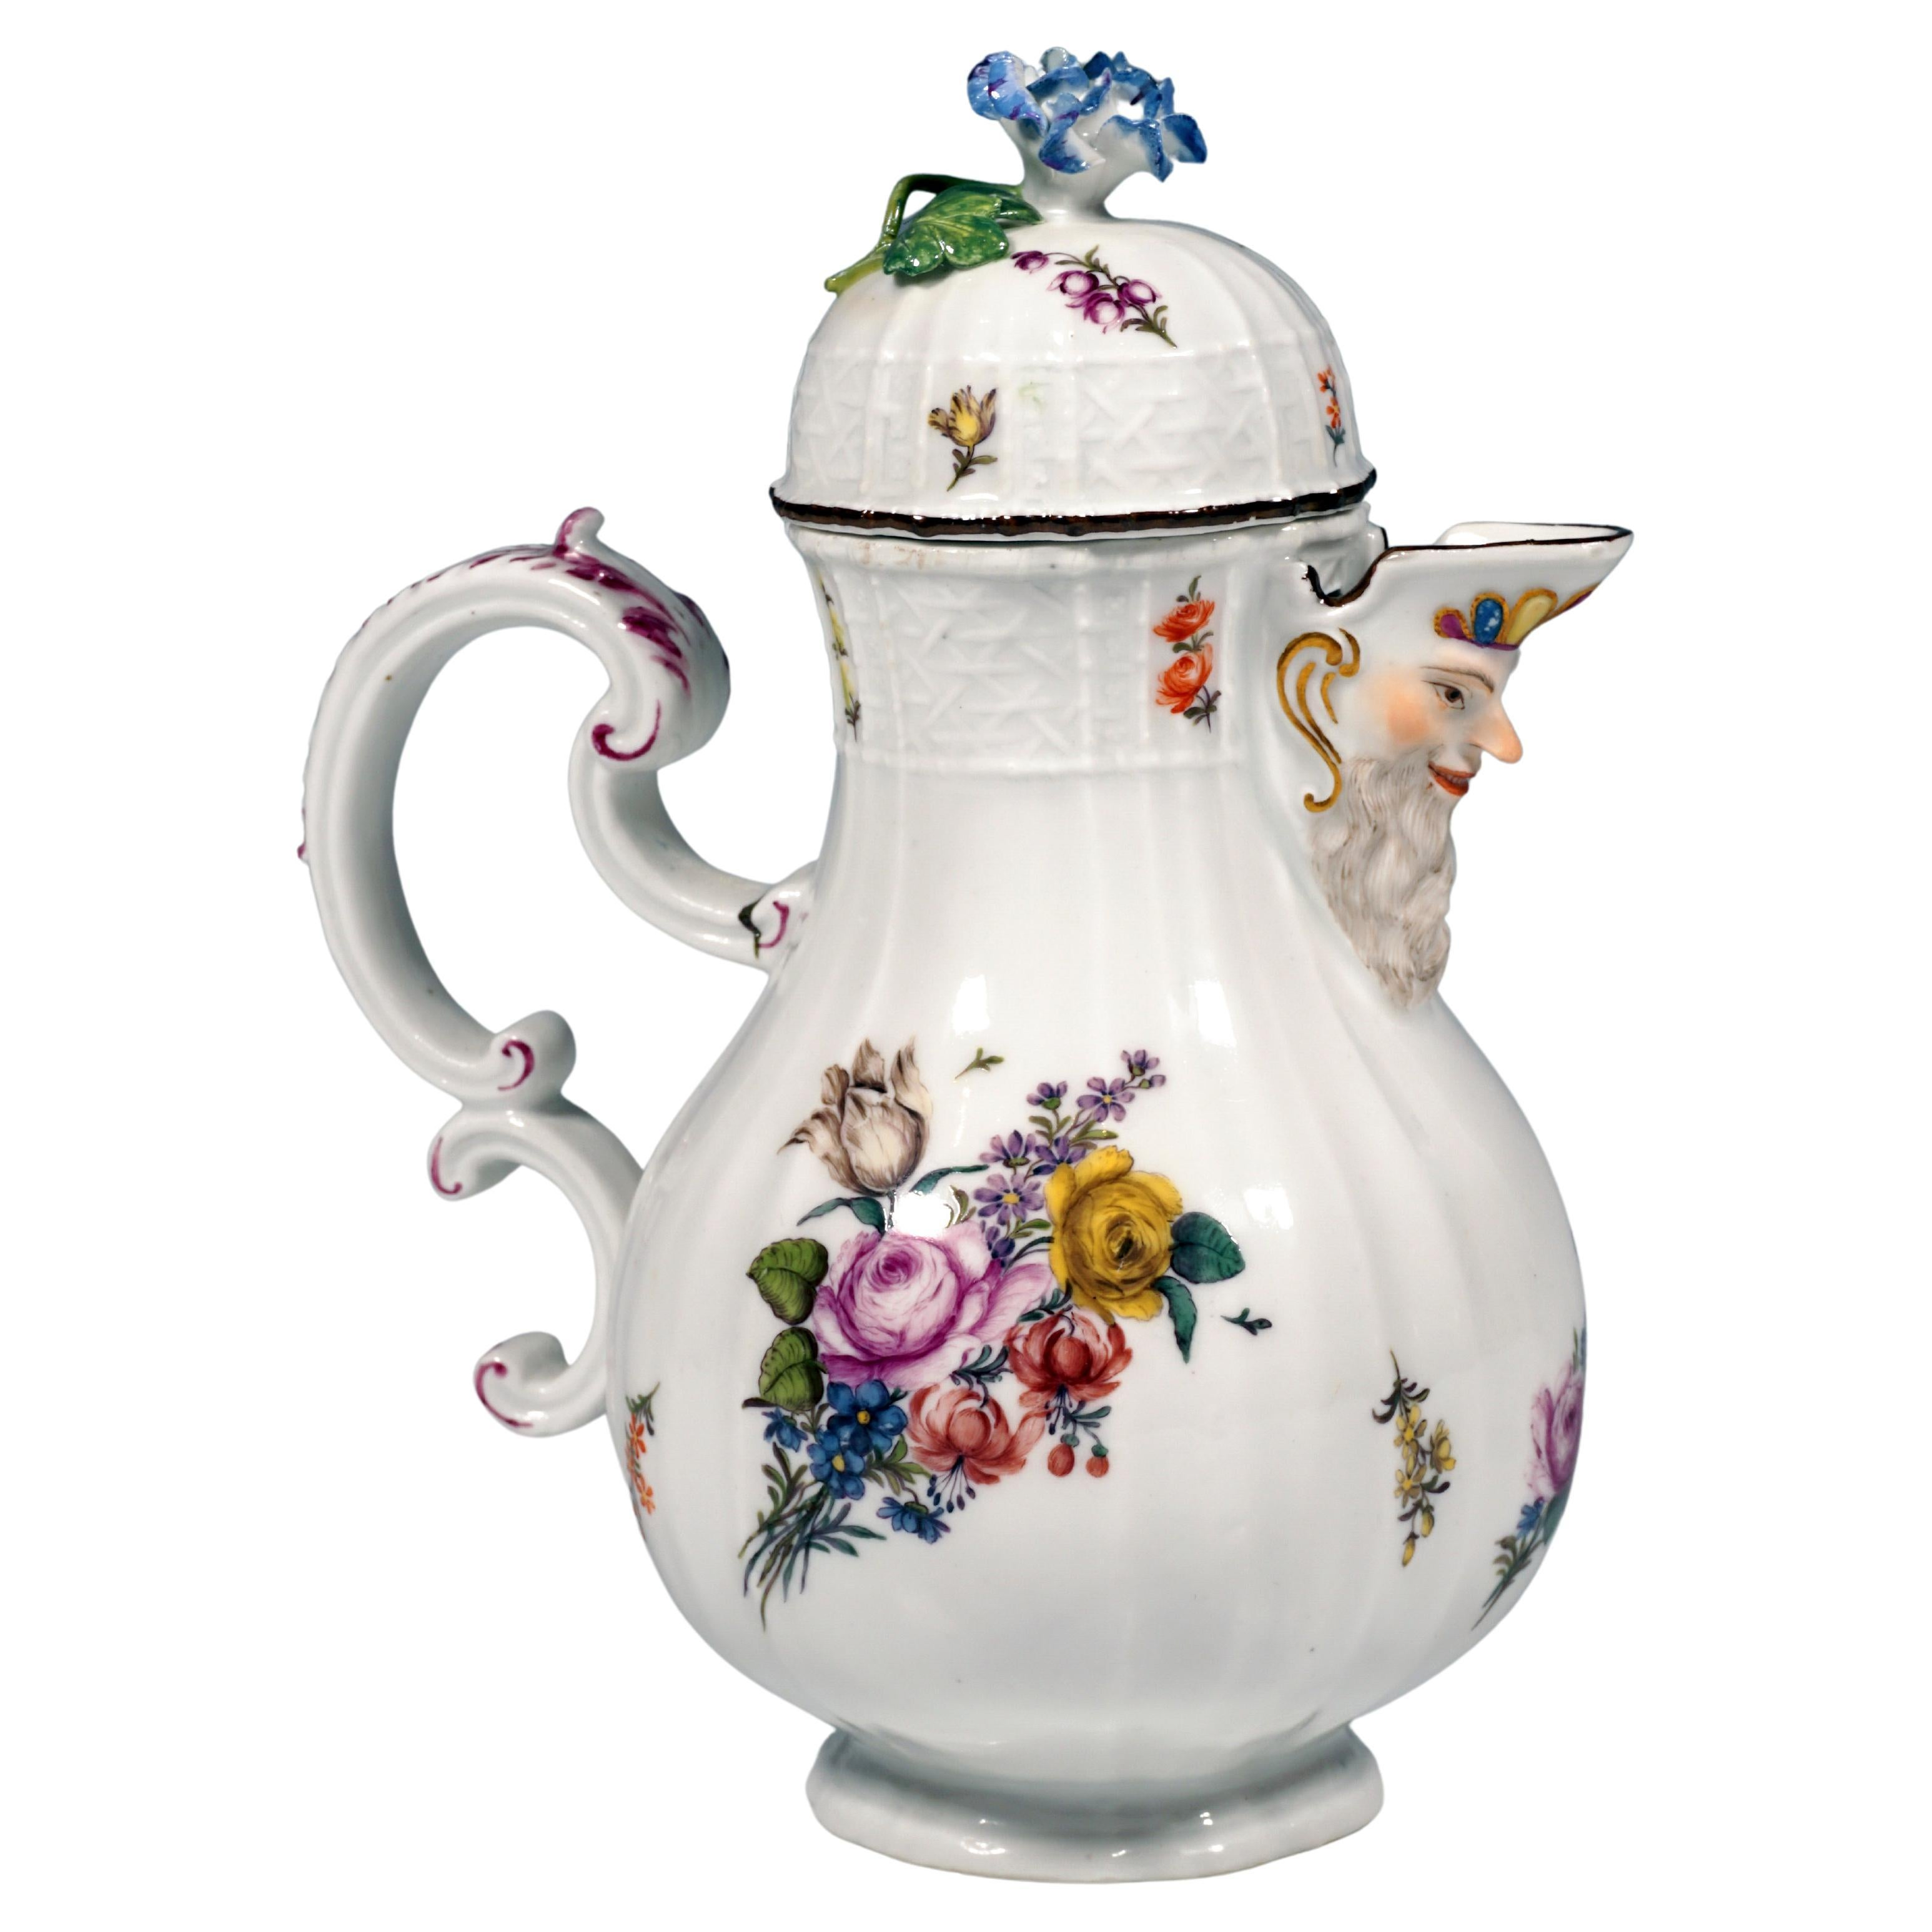 18th Century Meissen Lidded Mustard Jug, Bouquets and Scattered Flowers, ca 1745